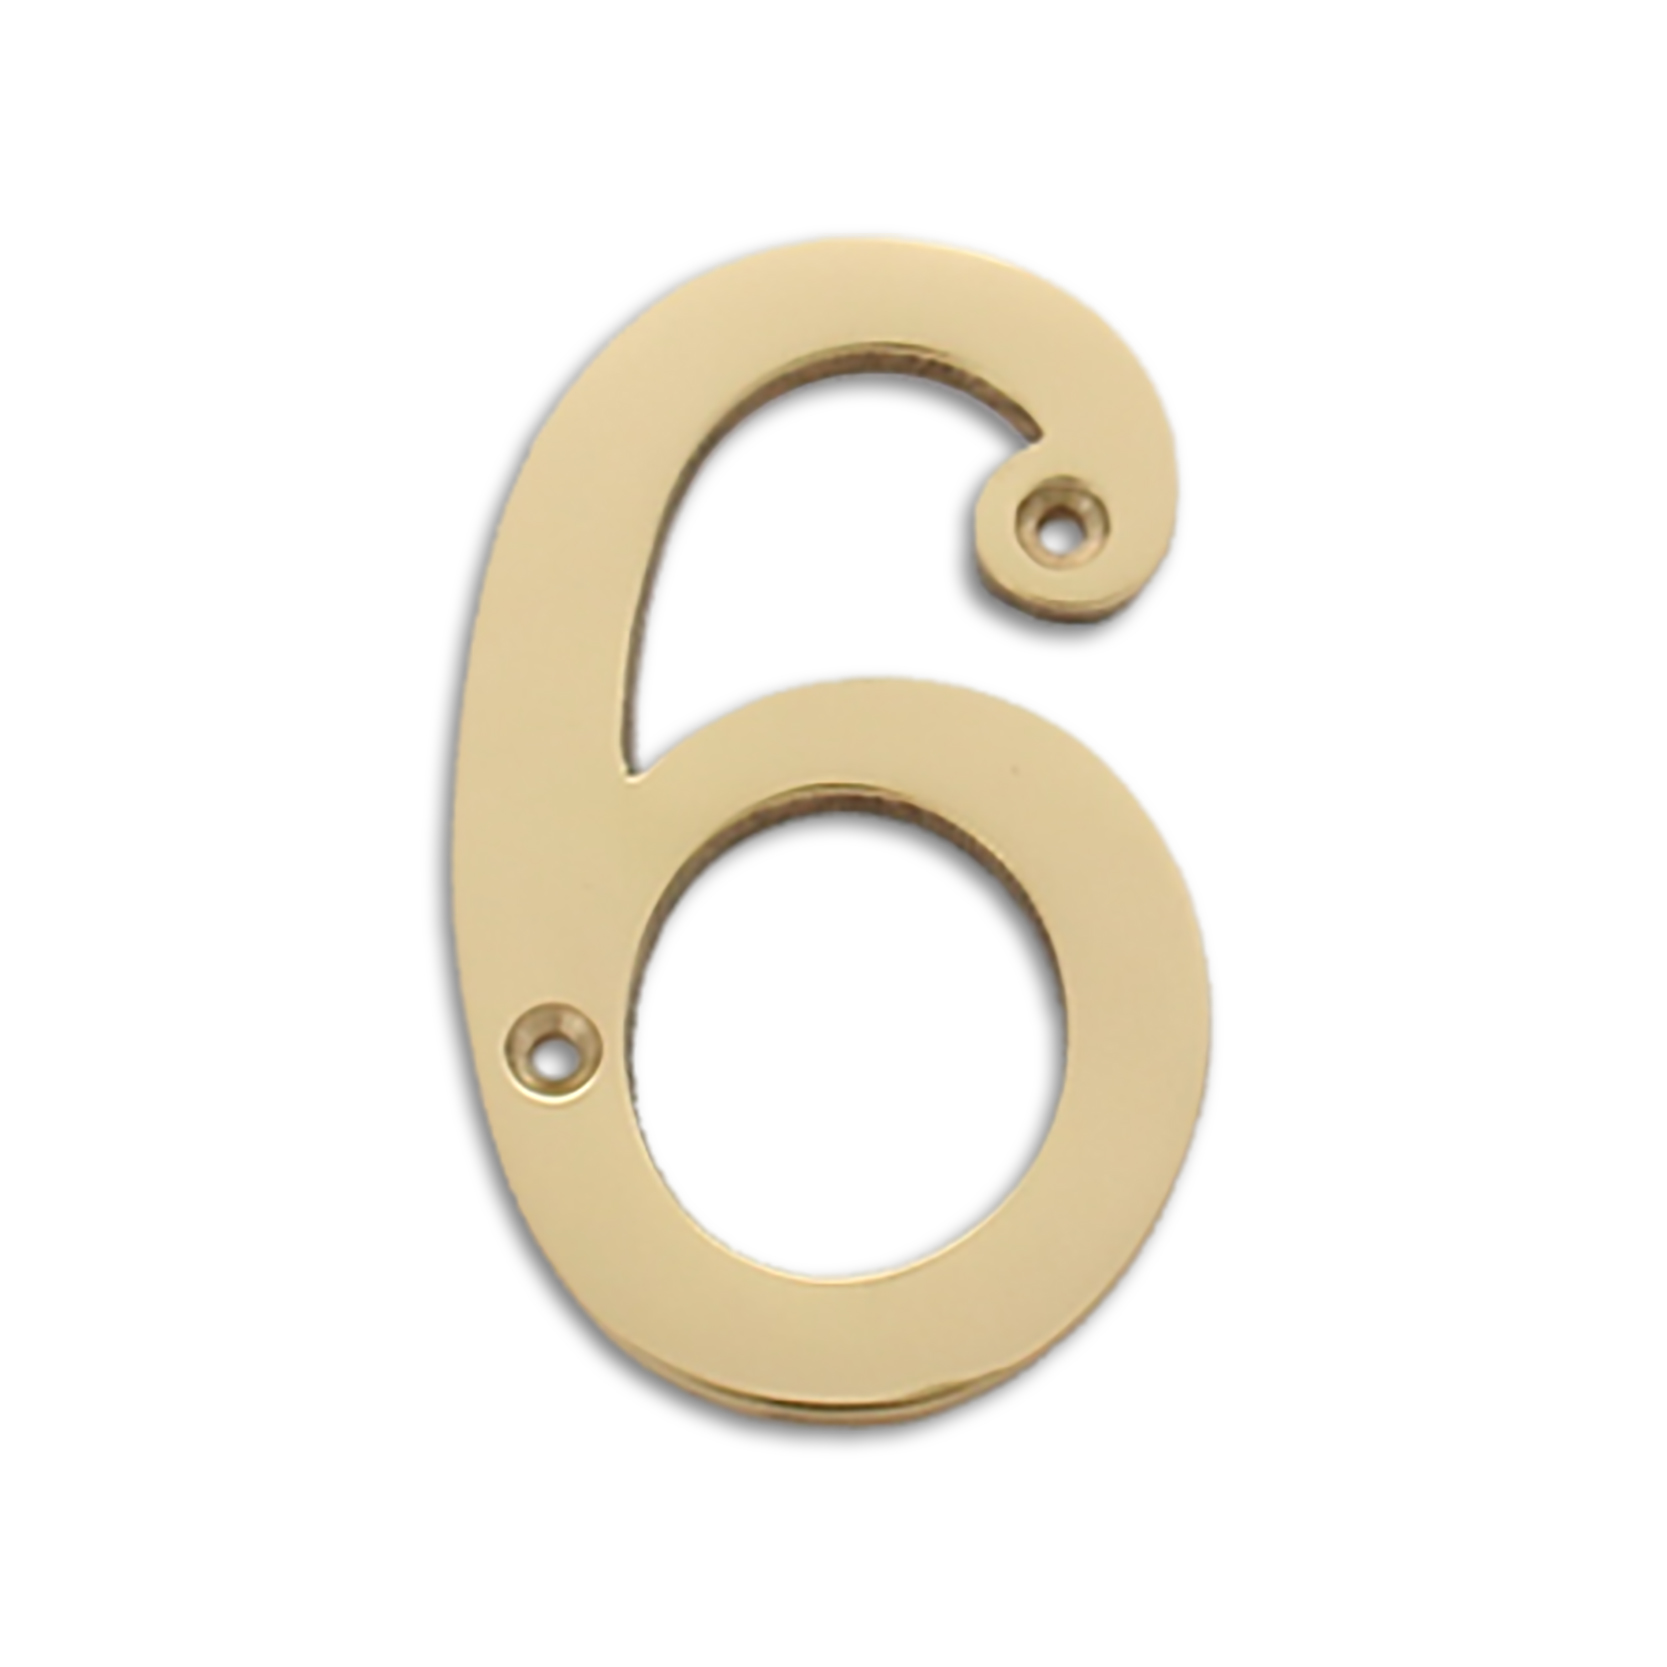 4-inch brass metal house number in polished brass finish - metal number 6